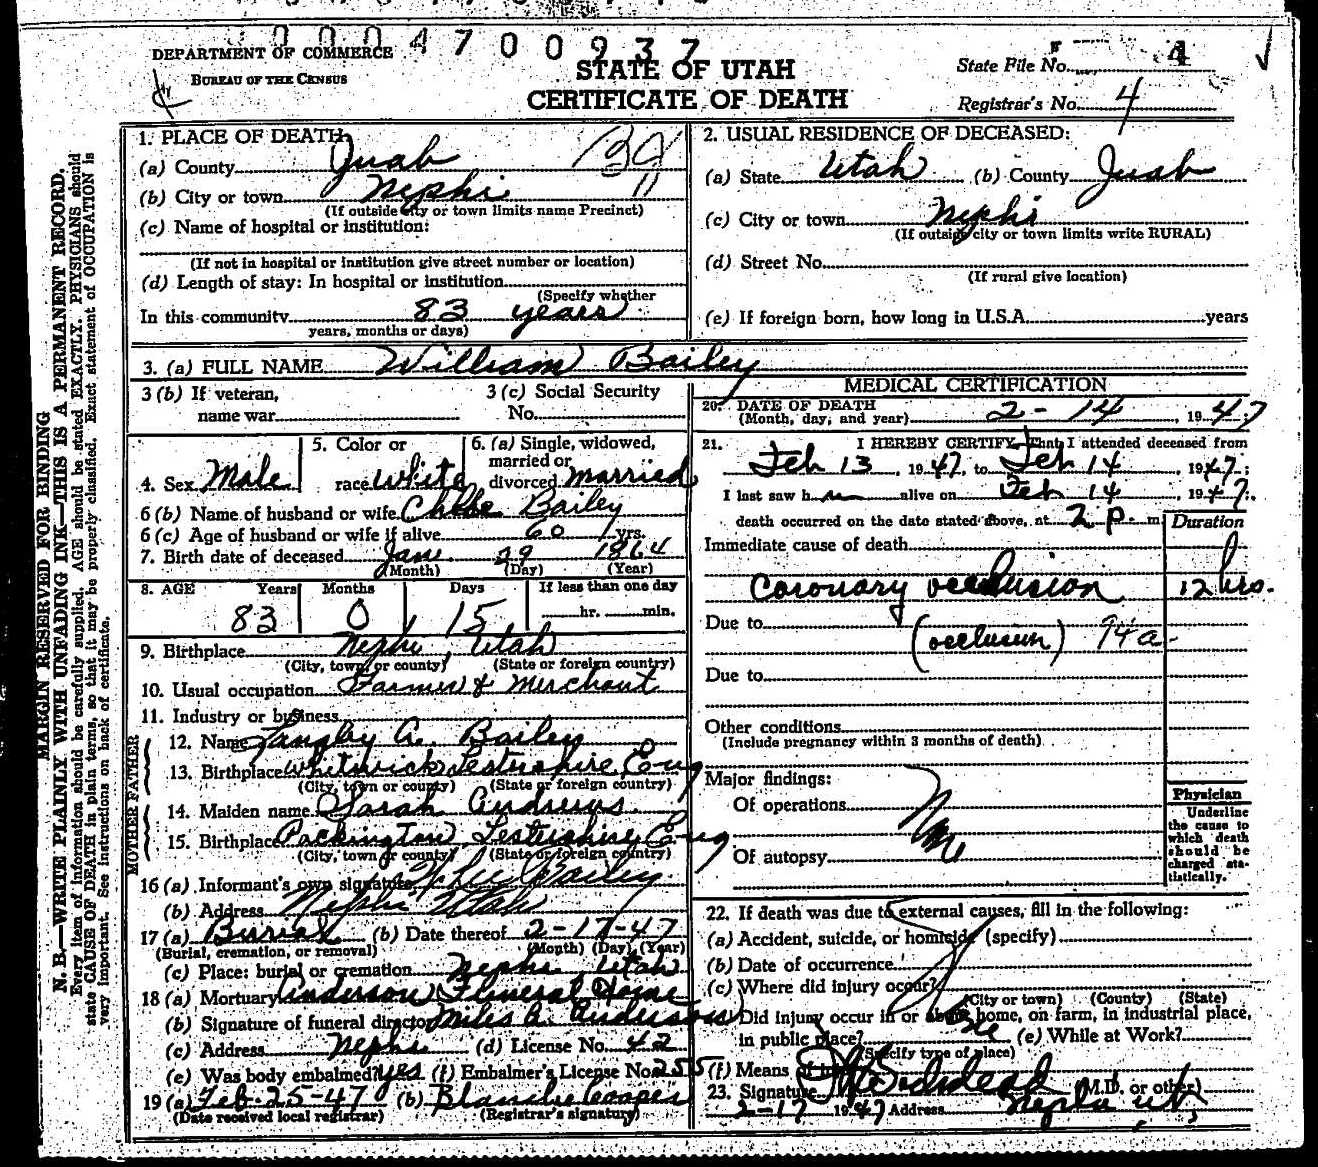 William bailey death certificate death certificate of william bailey 1betcityfo Choice Image